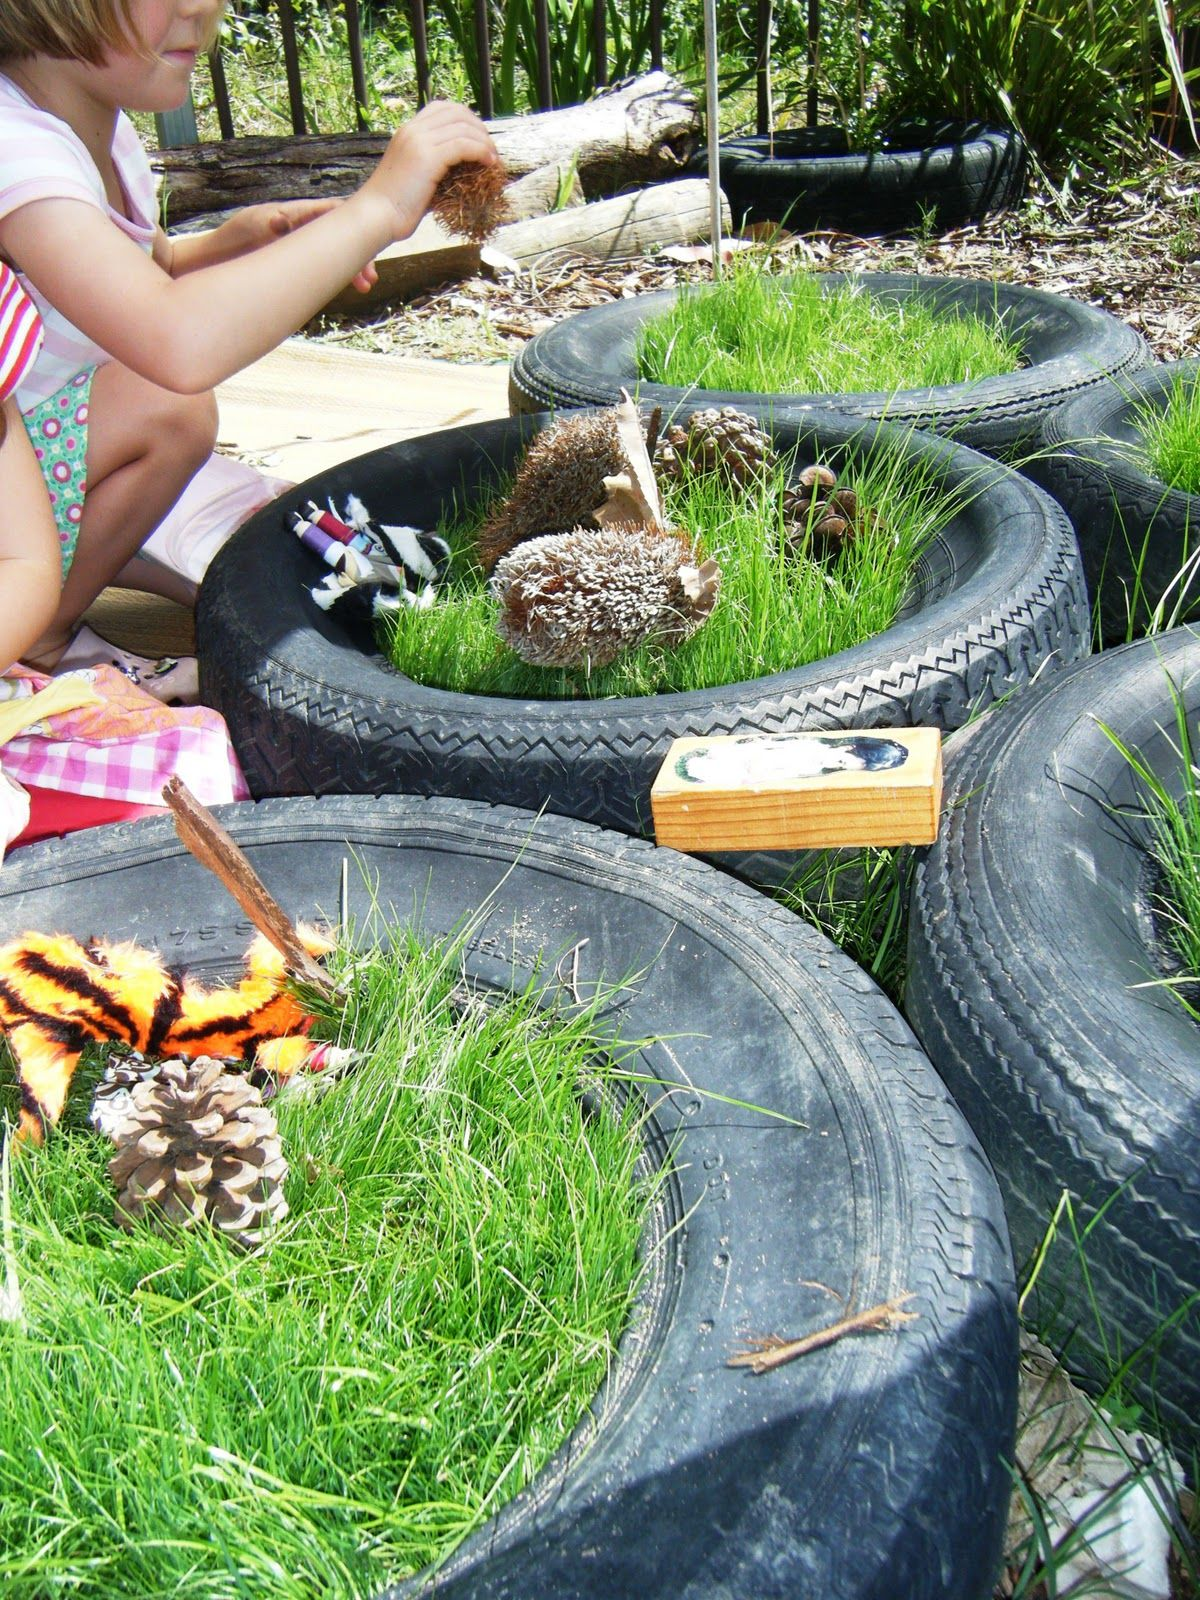 Let The Children Play: Set The Stage For Imaginative Play Outdoors